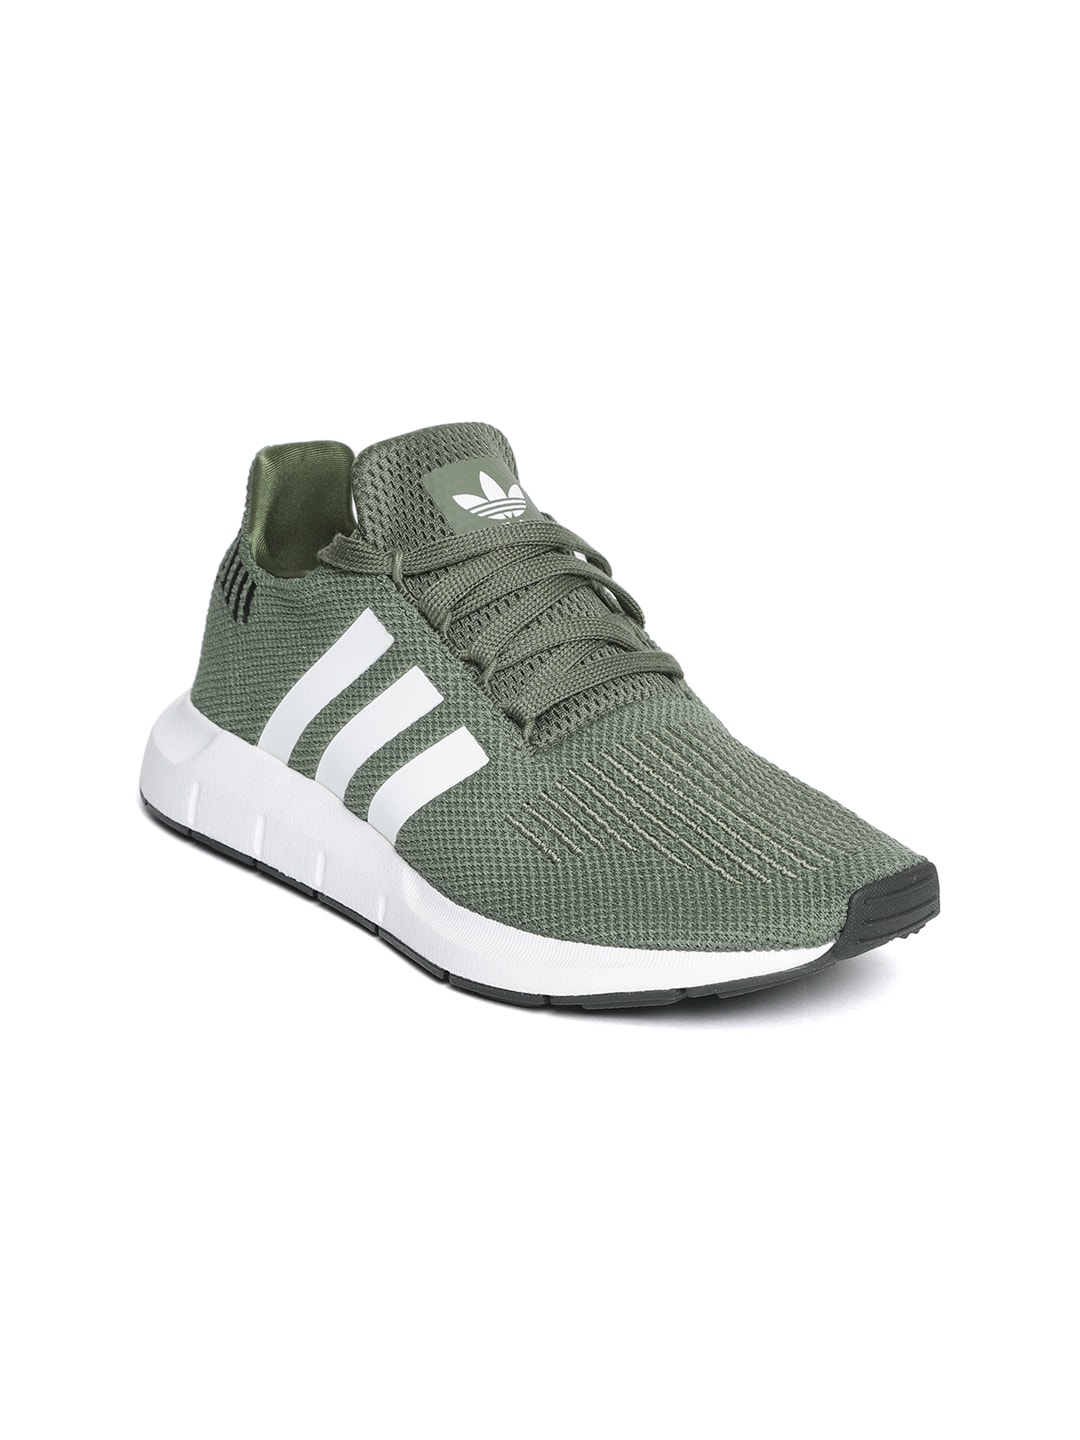 40b1570bb adidas originals sale   Rabatt bis zu 45%